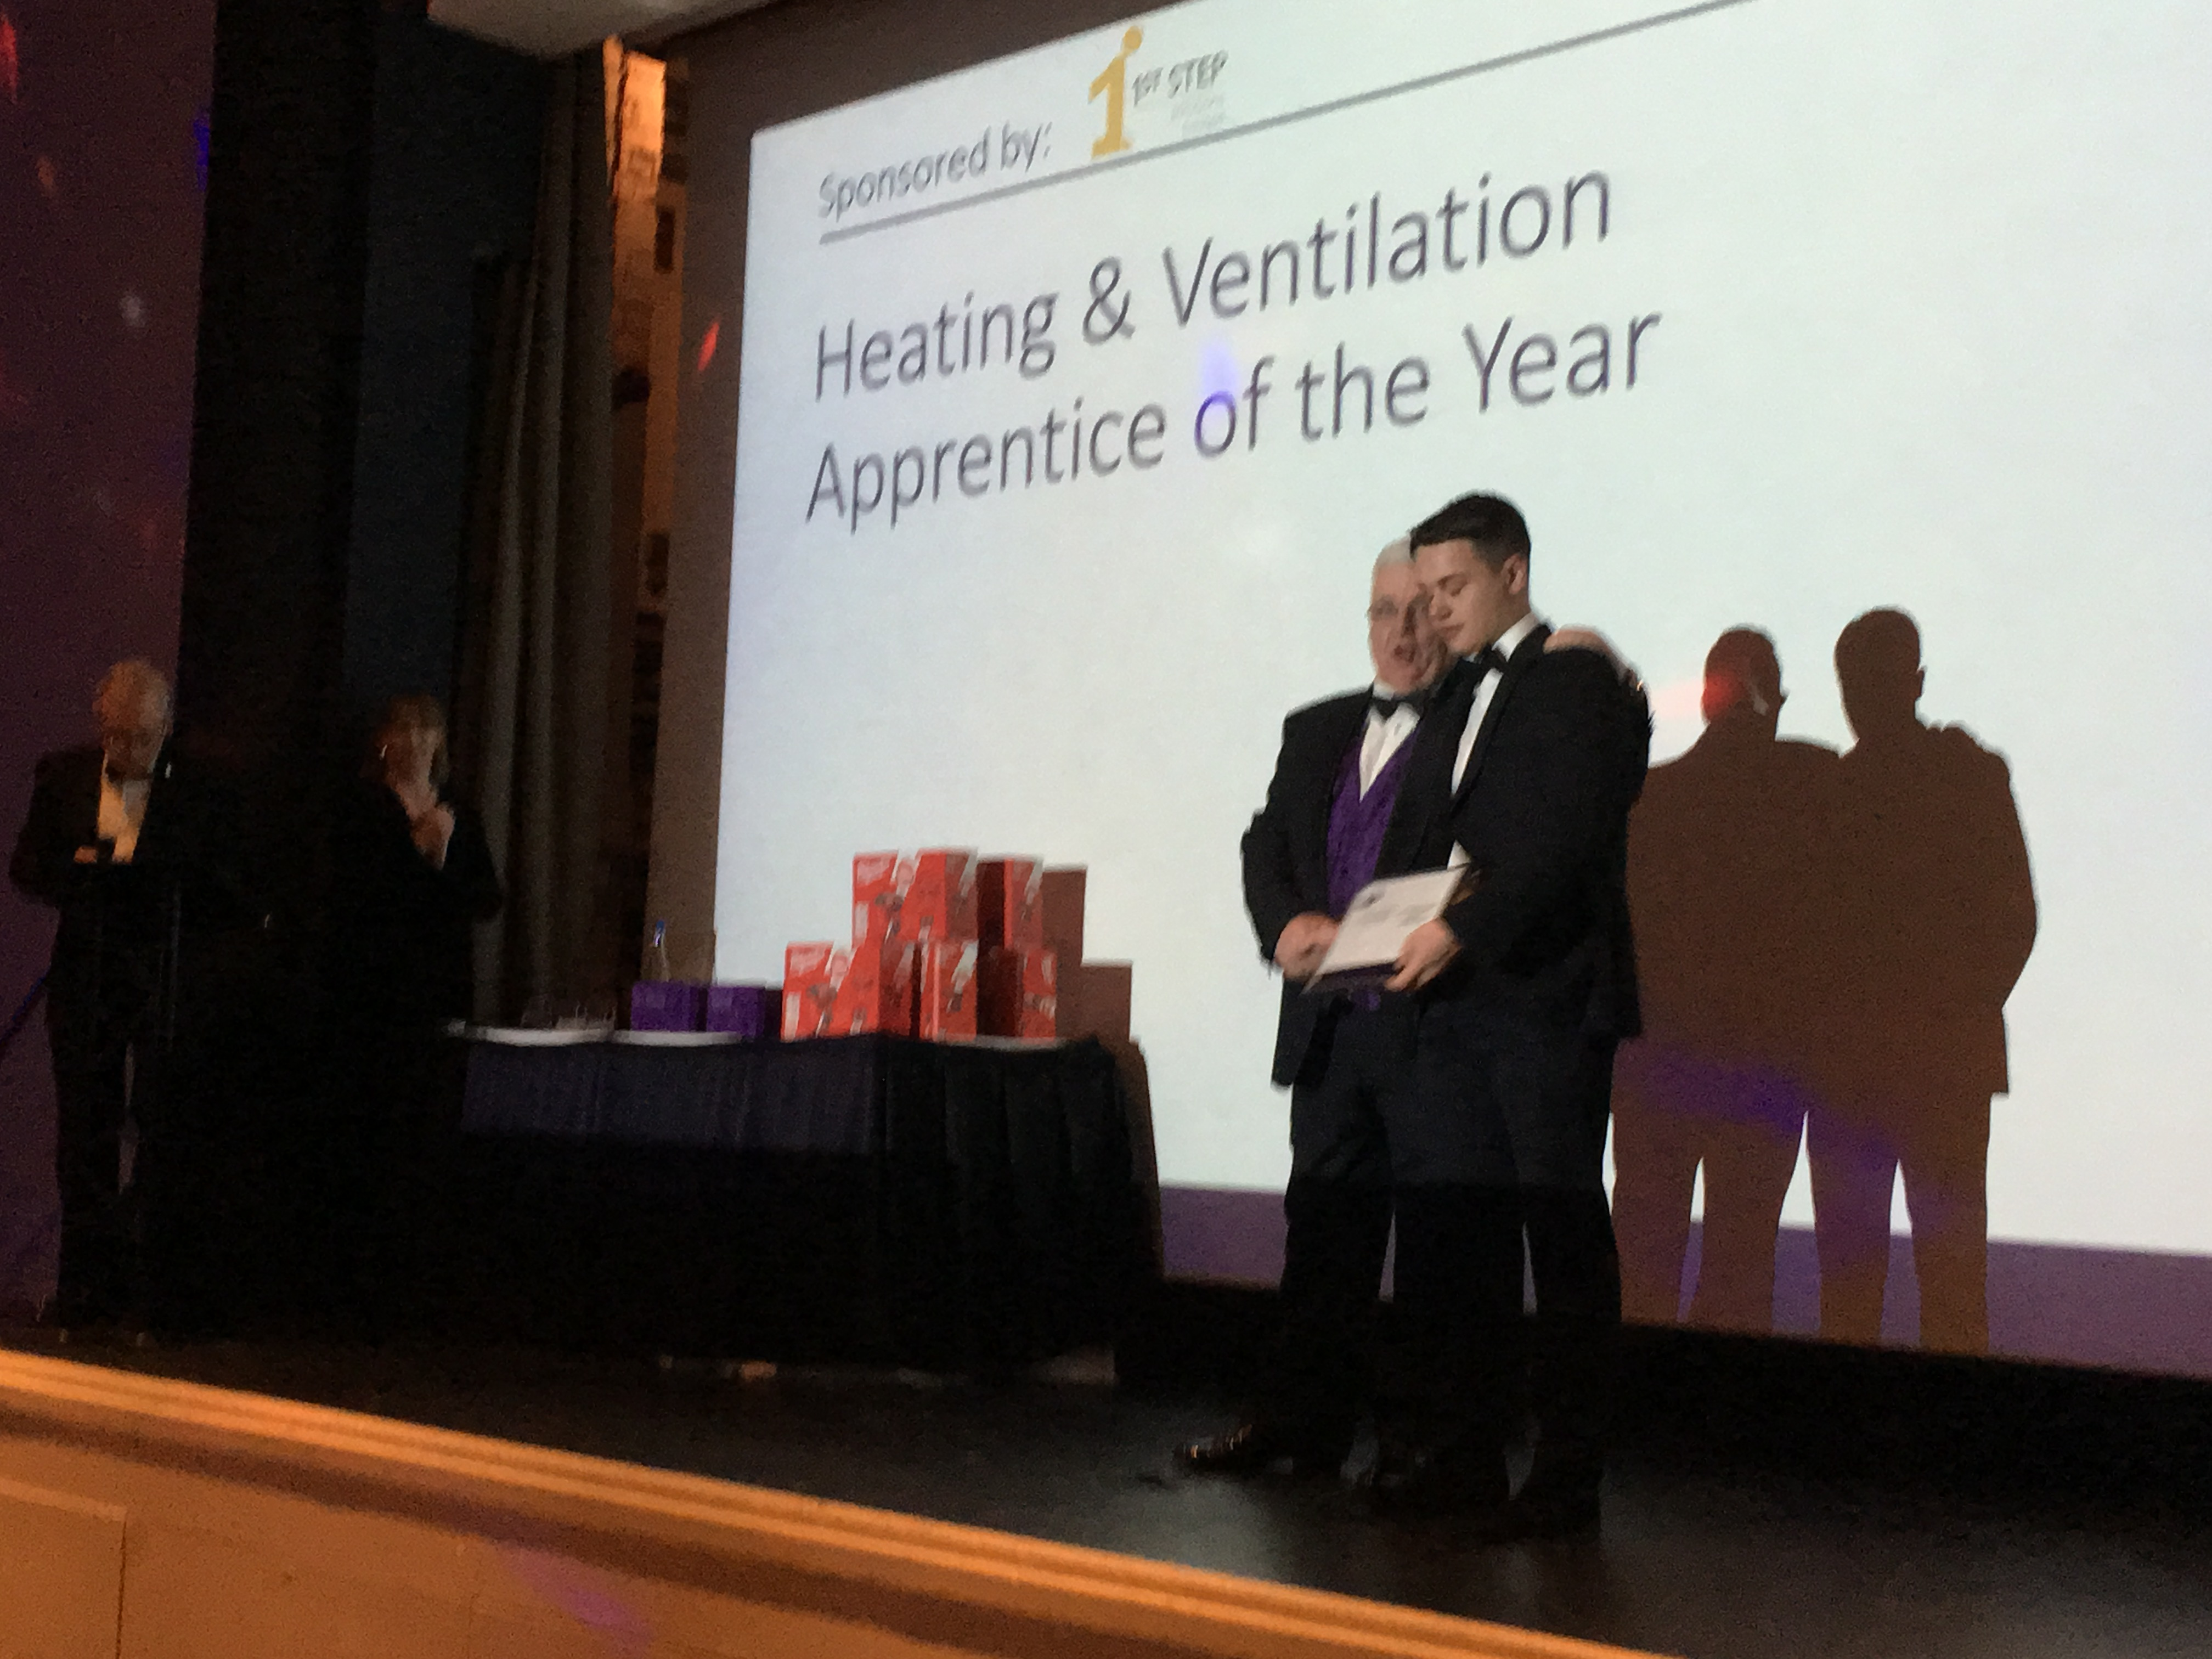 James Bostock - H&V Apprentice of the Year Highly Commended